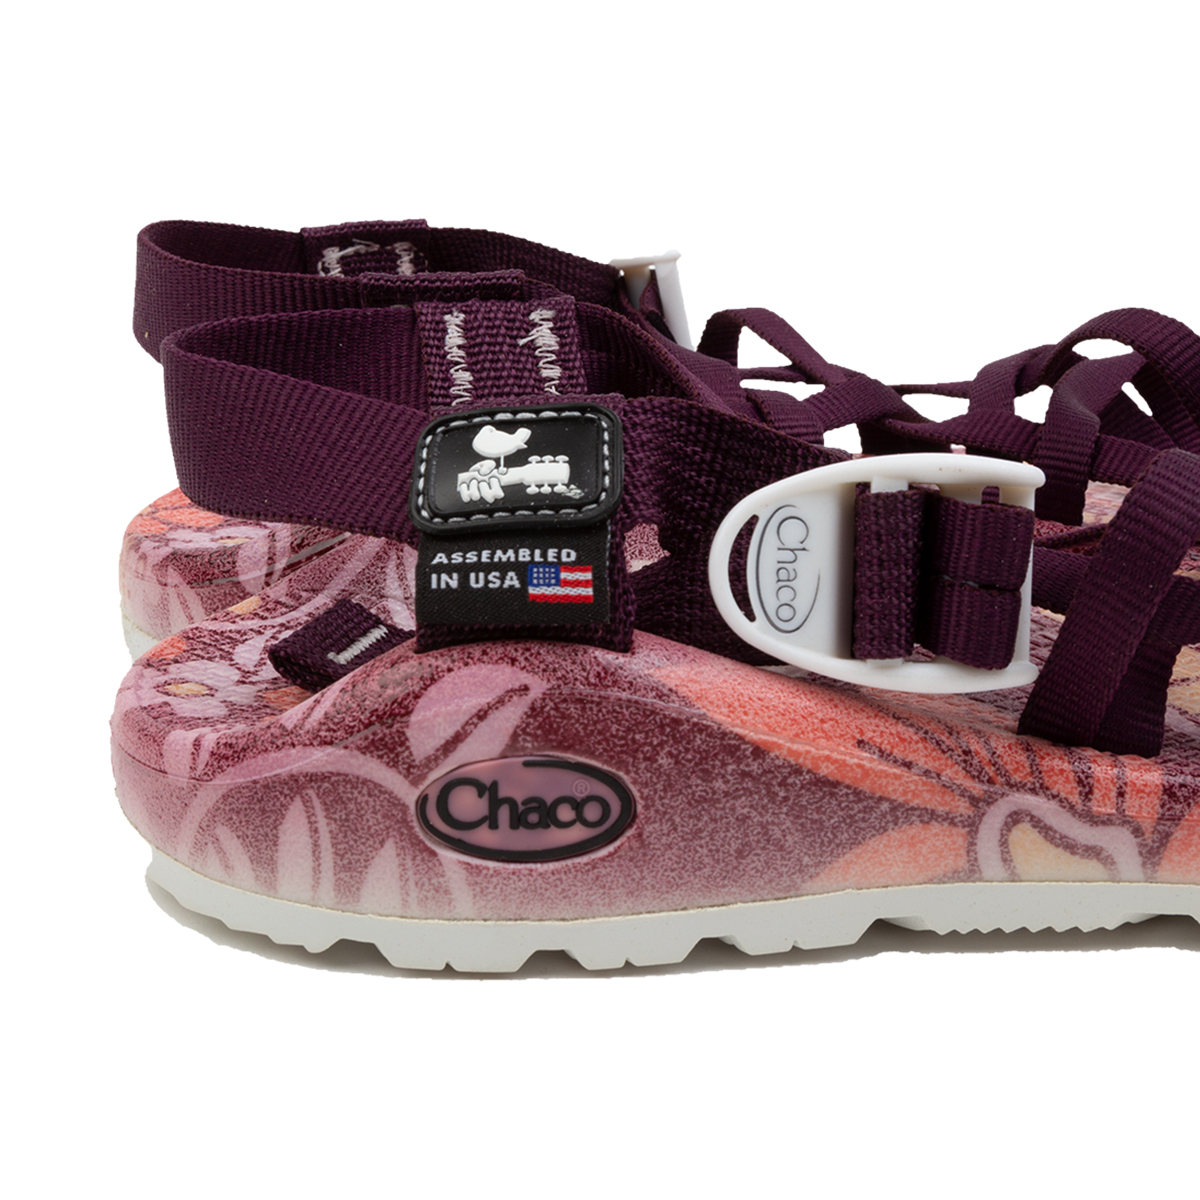 Chacos Woodstock Z Cloud X2 Blossom Wine Womens Sandals